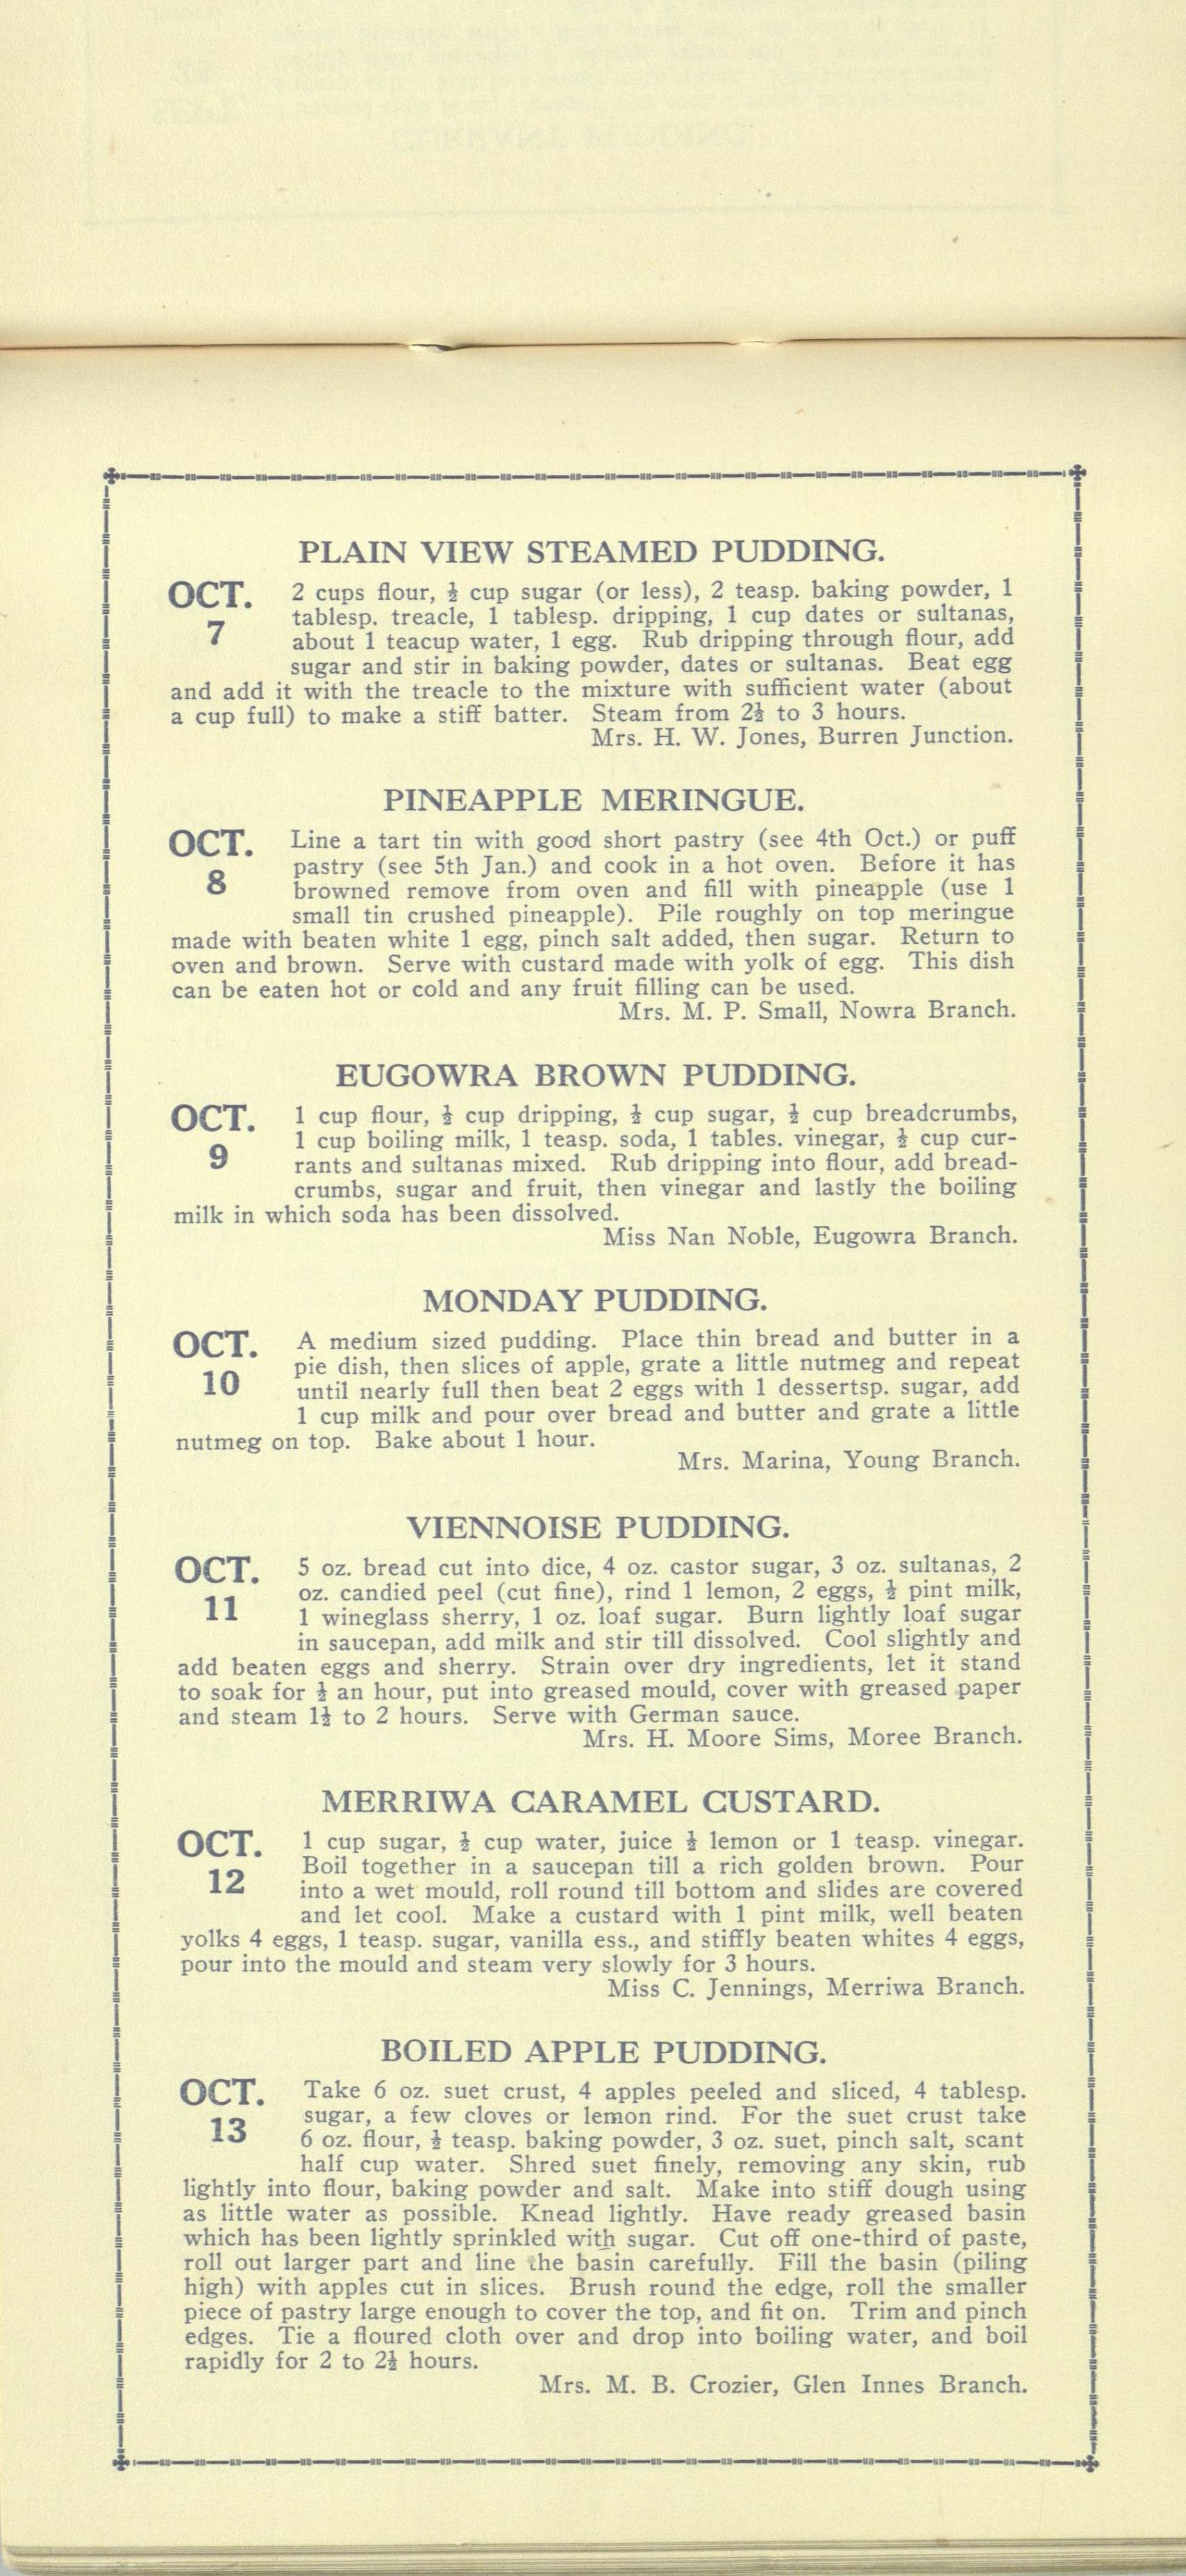 Country Women's Association of New South Wales calendar of puddings from 1931 (7 October - 13 October)